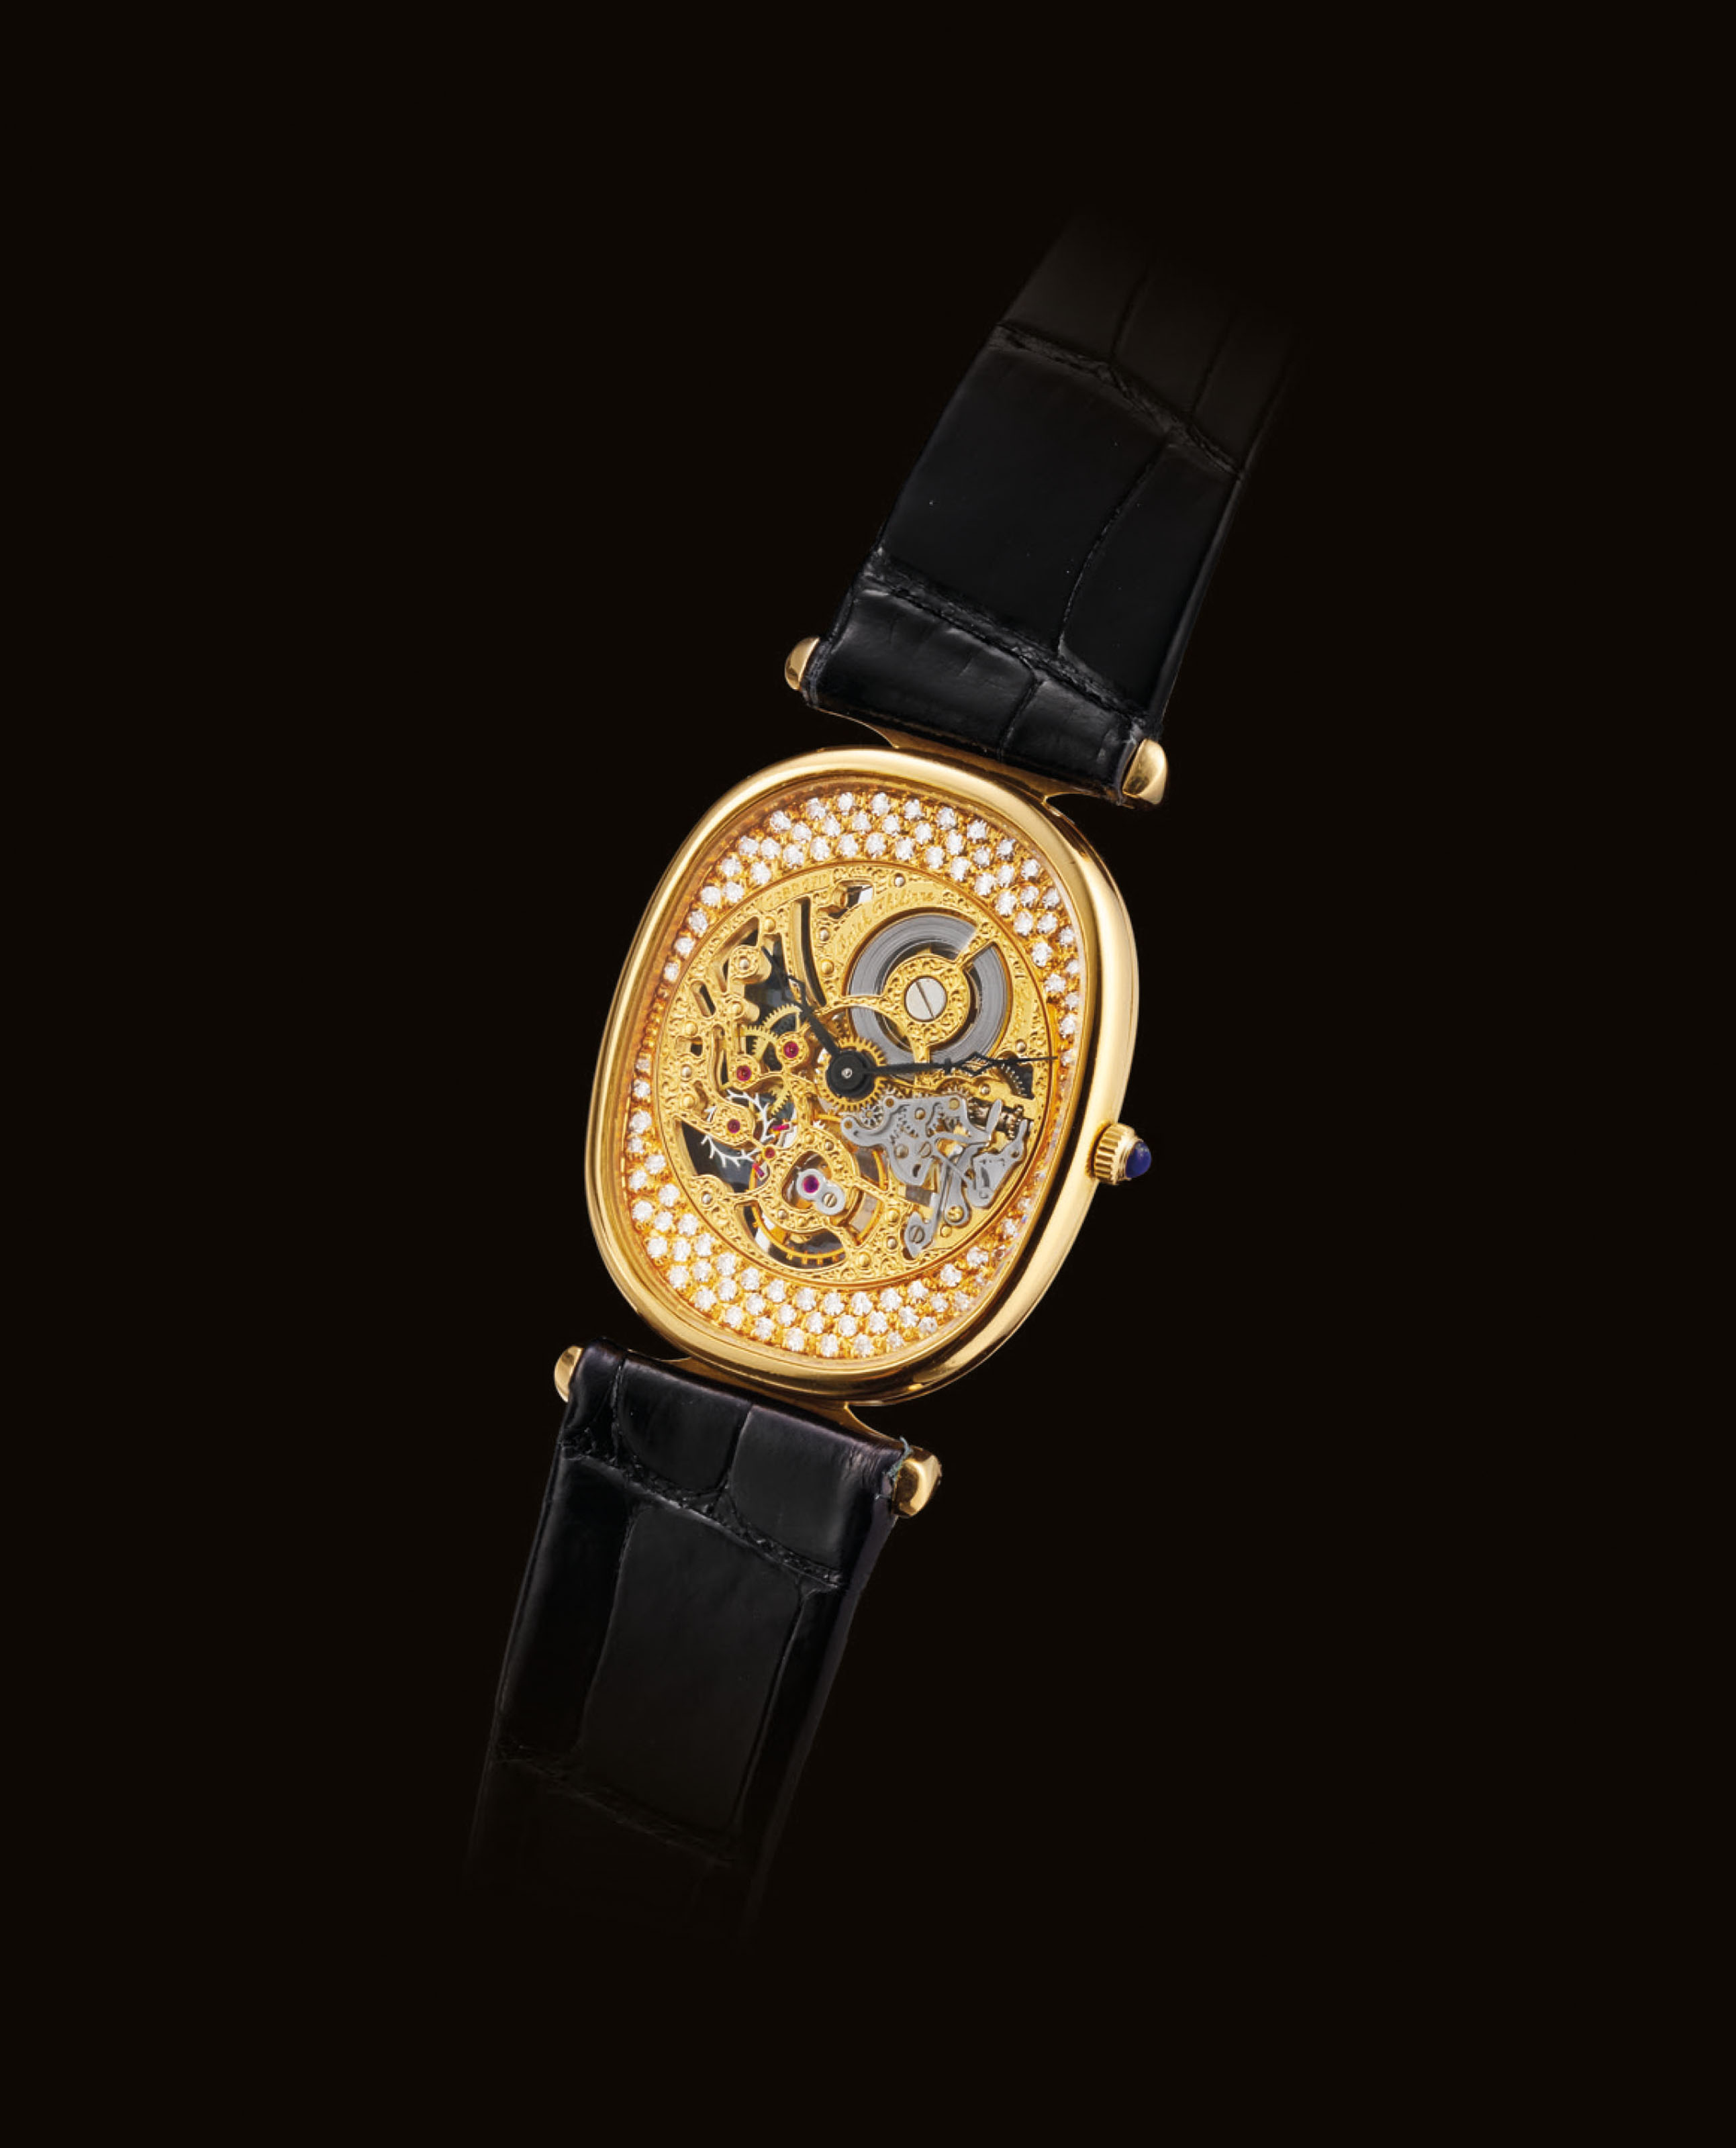 PATEK PHILIPPE. A FINE AND RARE 18K GOLD AND DIAMOND-SET CUSHION-SHAPED SKELETONISED WRISTWATCH